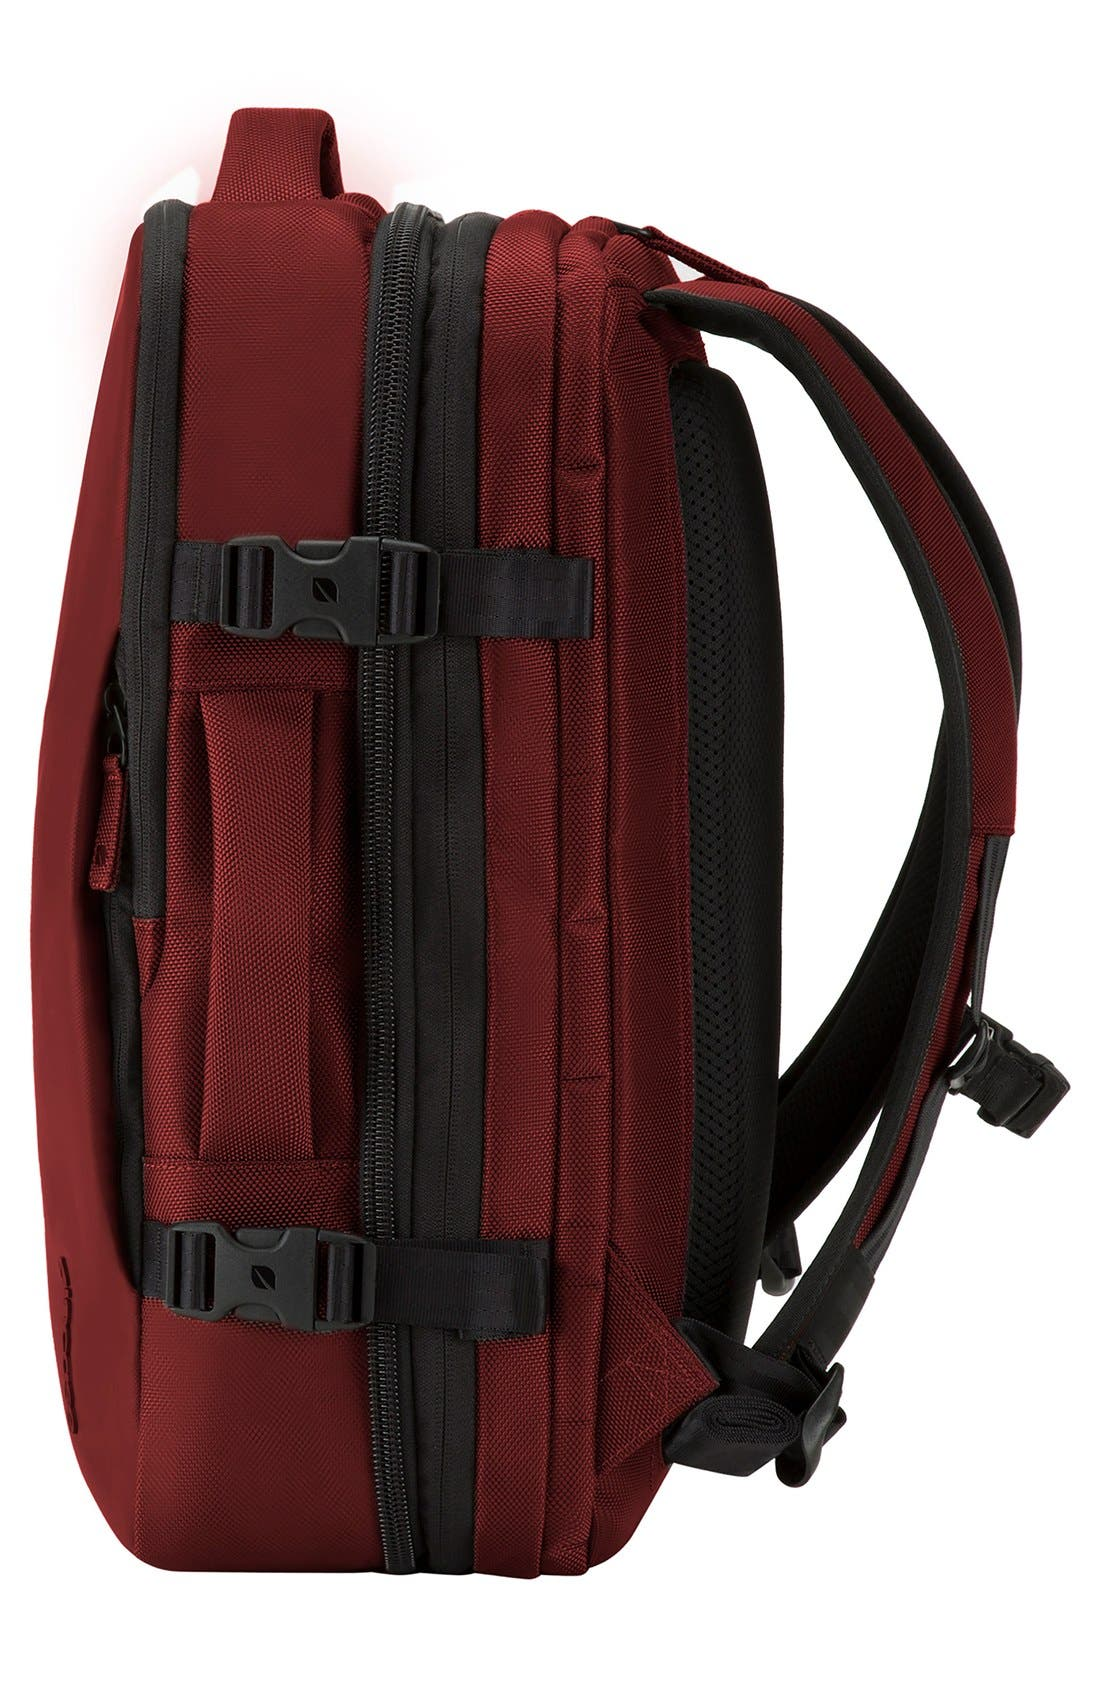 VIA Backpack,                             Alternate thumbnail 4, color,                             Deep Red